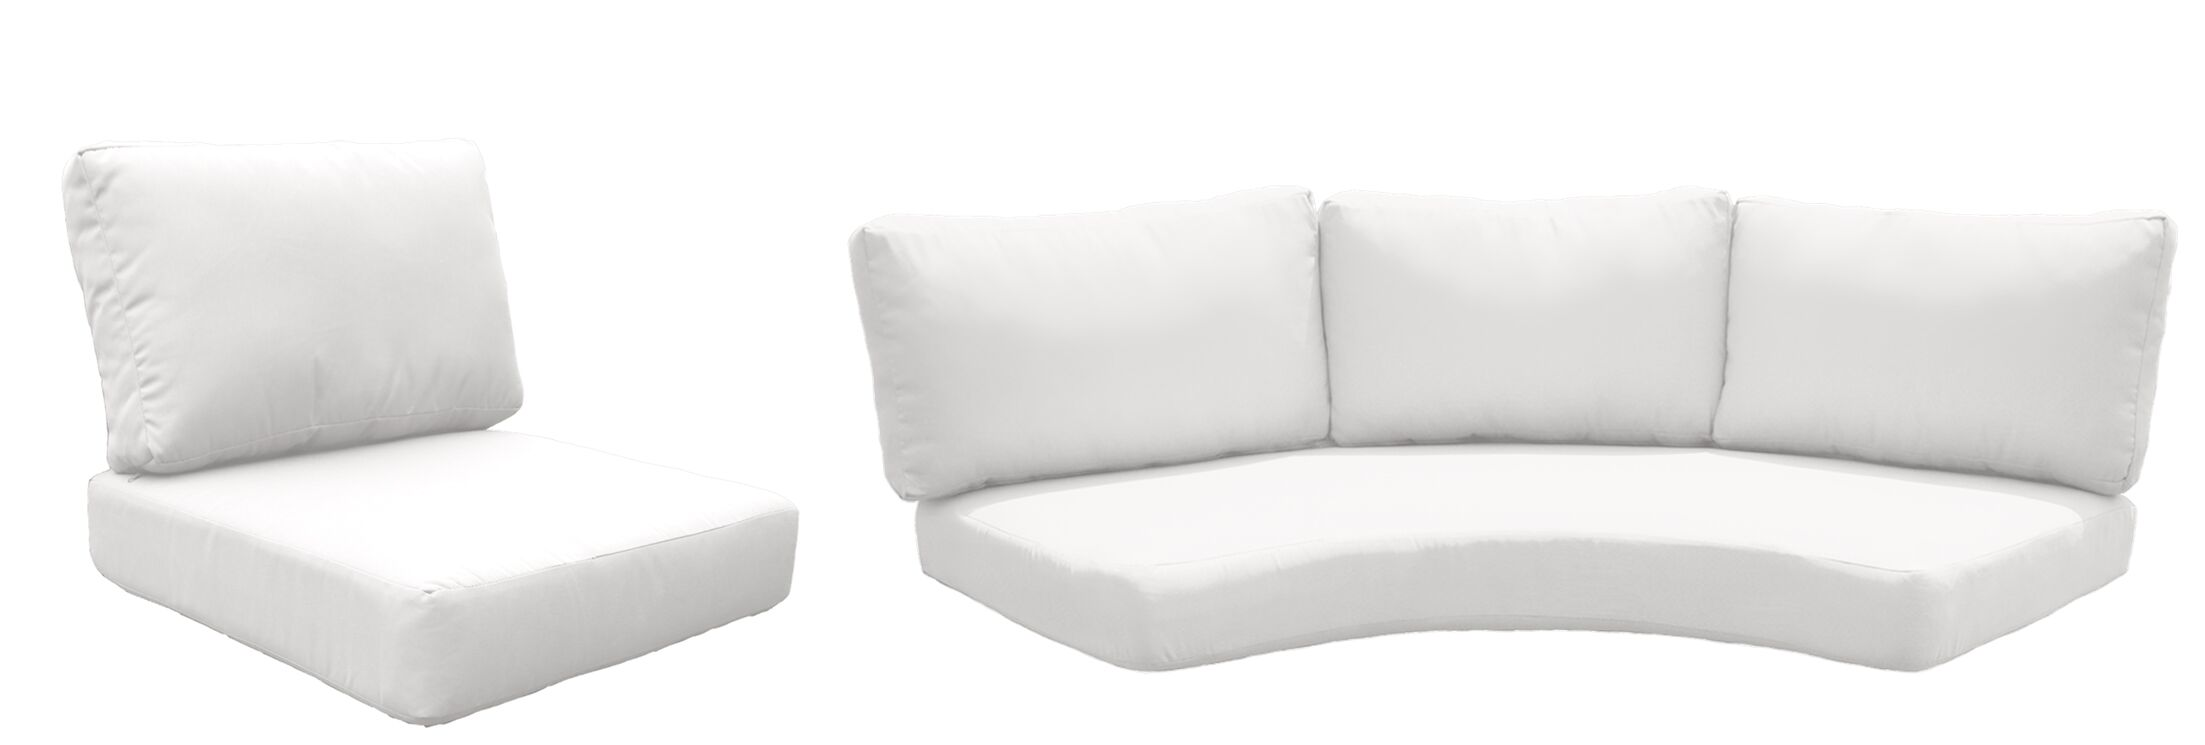 Fairmont 14 Piece Outdoor�Lounge Chair Cushion Set Fabric: White